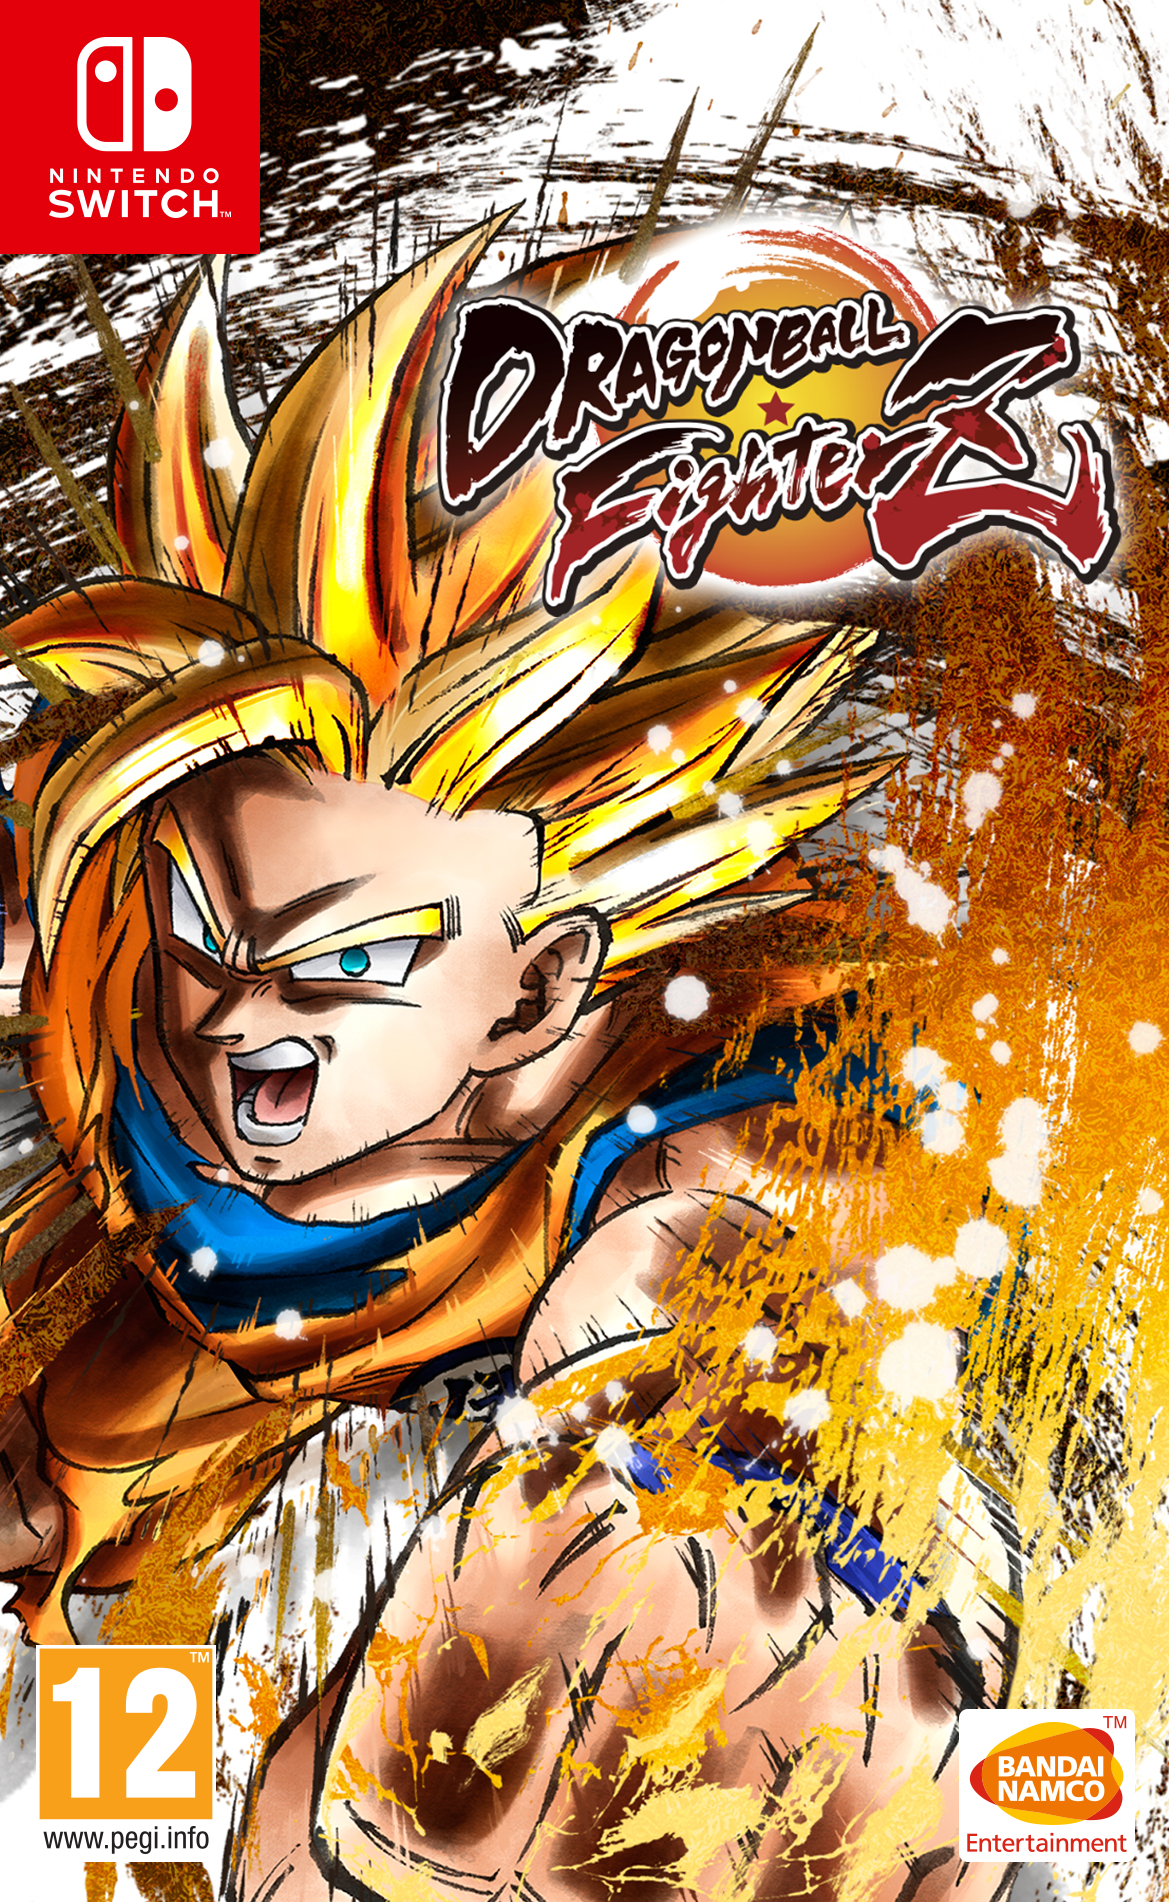 E3 2018 - Ridiculous 2D fighter Dragon Ball FighterZ is flying onto Switch sometime this year